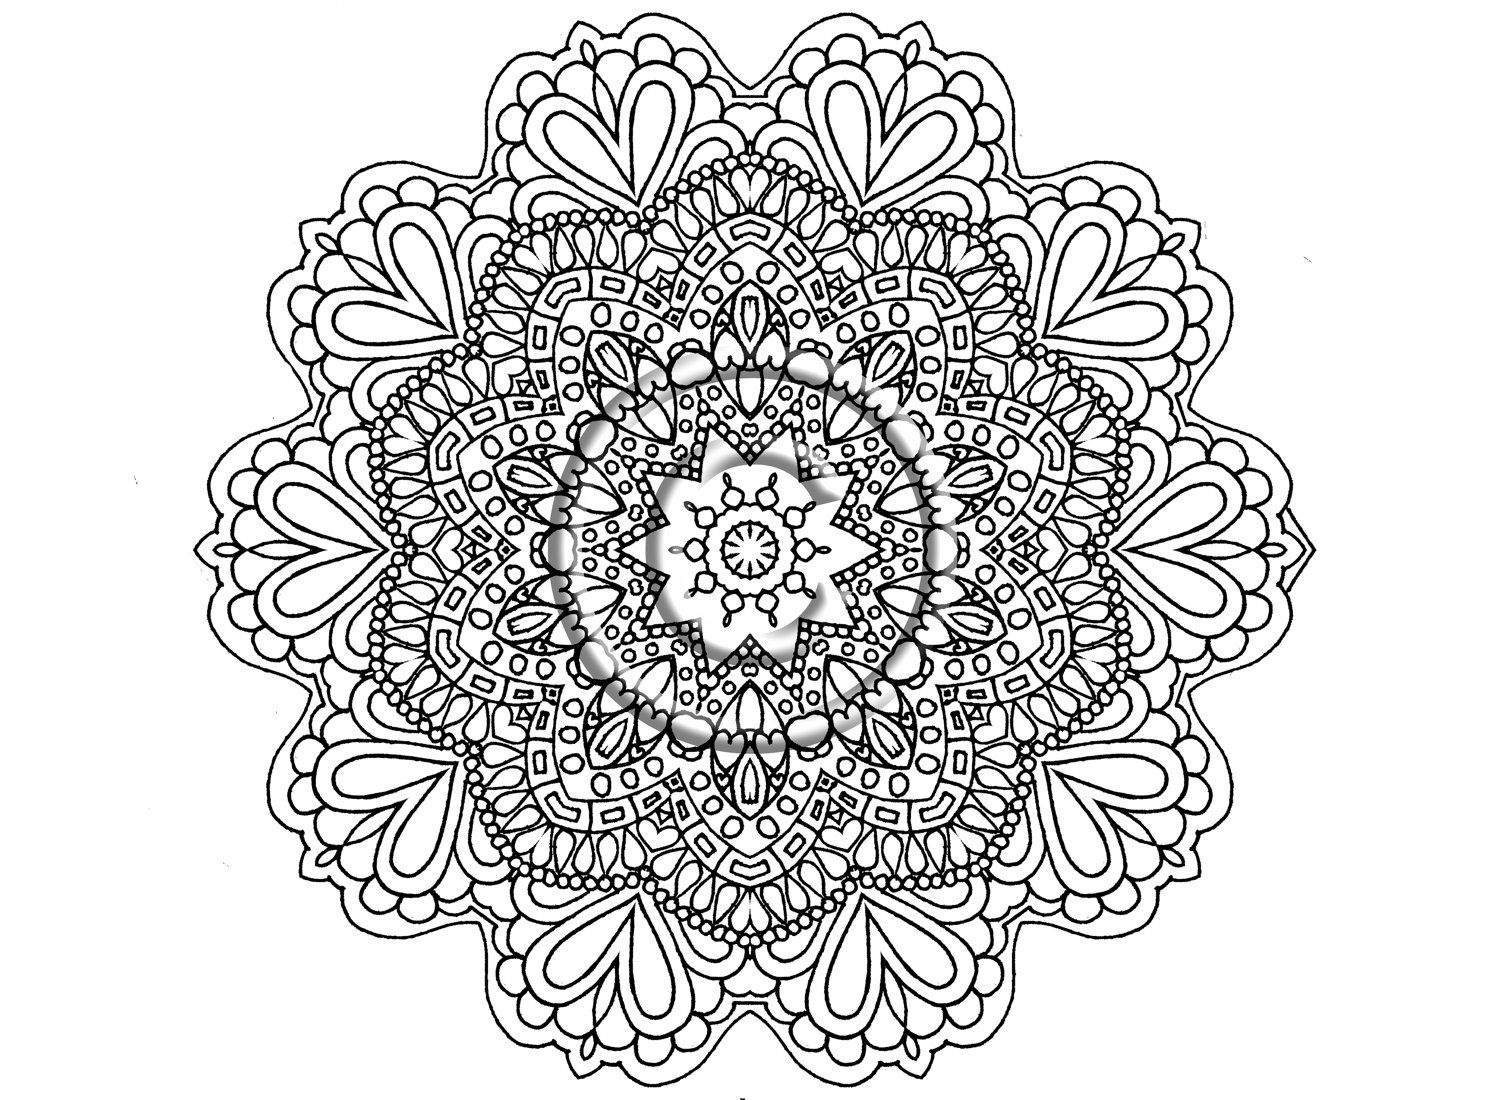 zentangle coloring pages free printable zentangle to print for free zentangle kids coloring pages pages printable free coloring zentangle